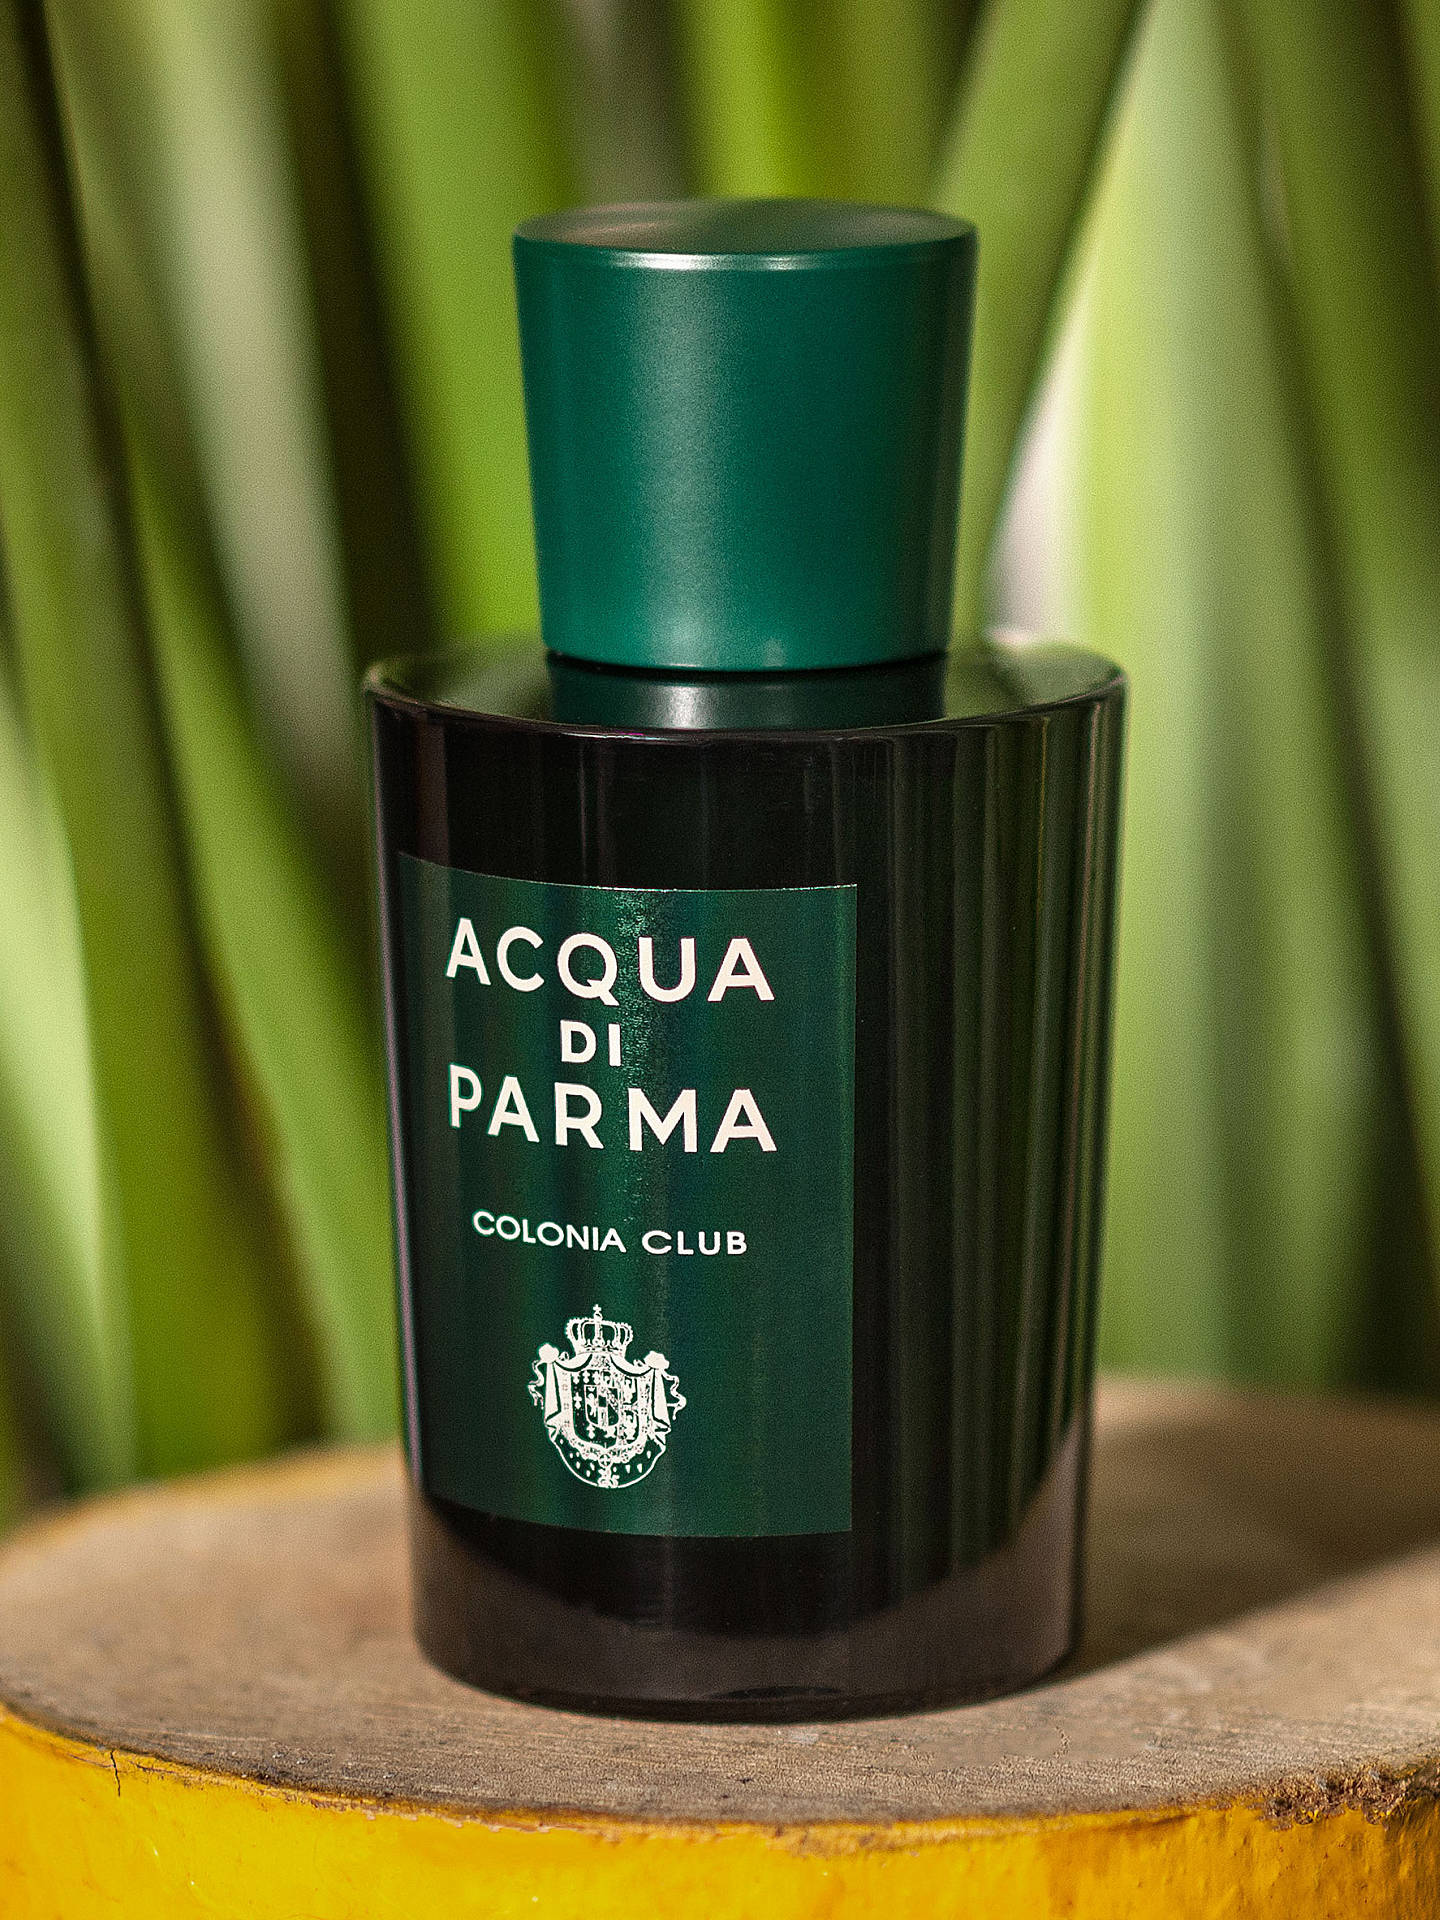 Buy Acqua di Parma Colonia Club Eau de Cologne, 50ml Online at johnlewis.com